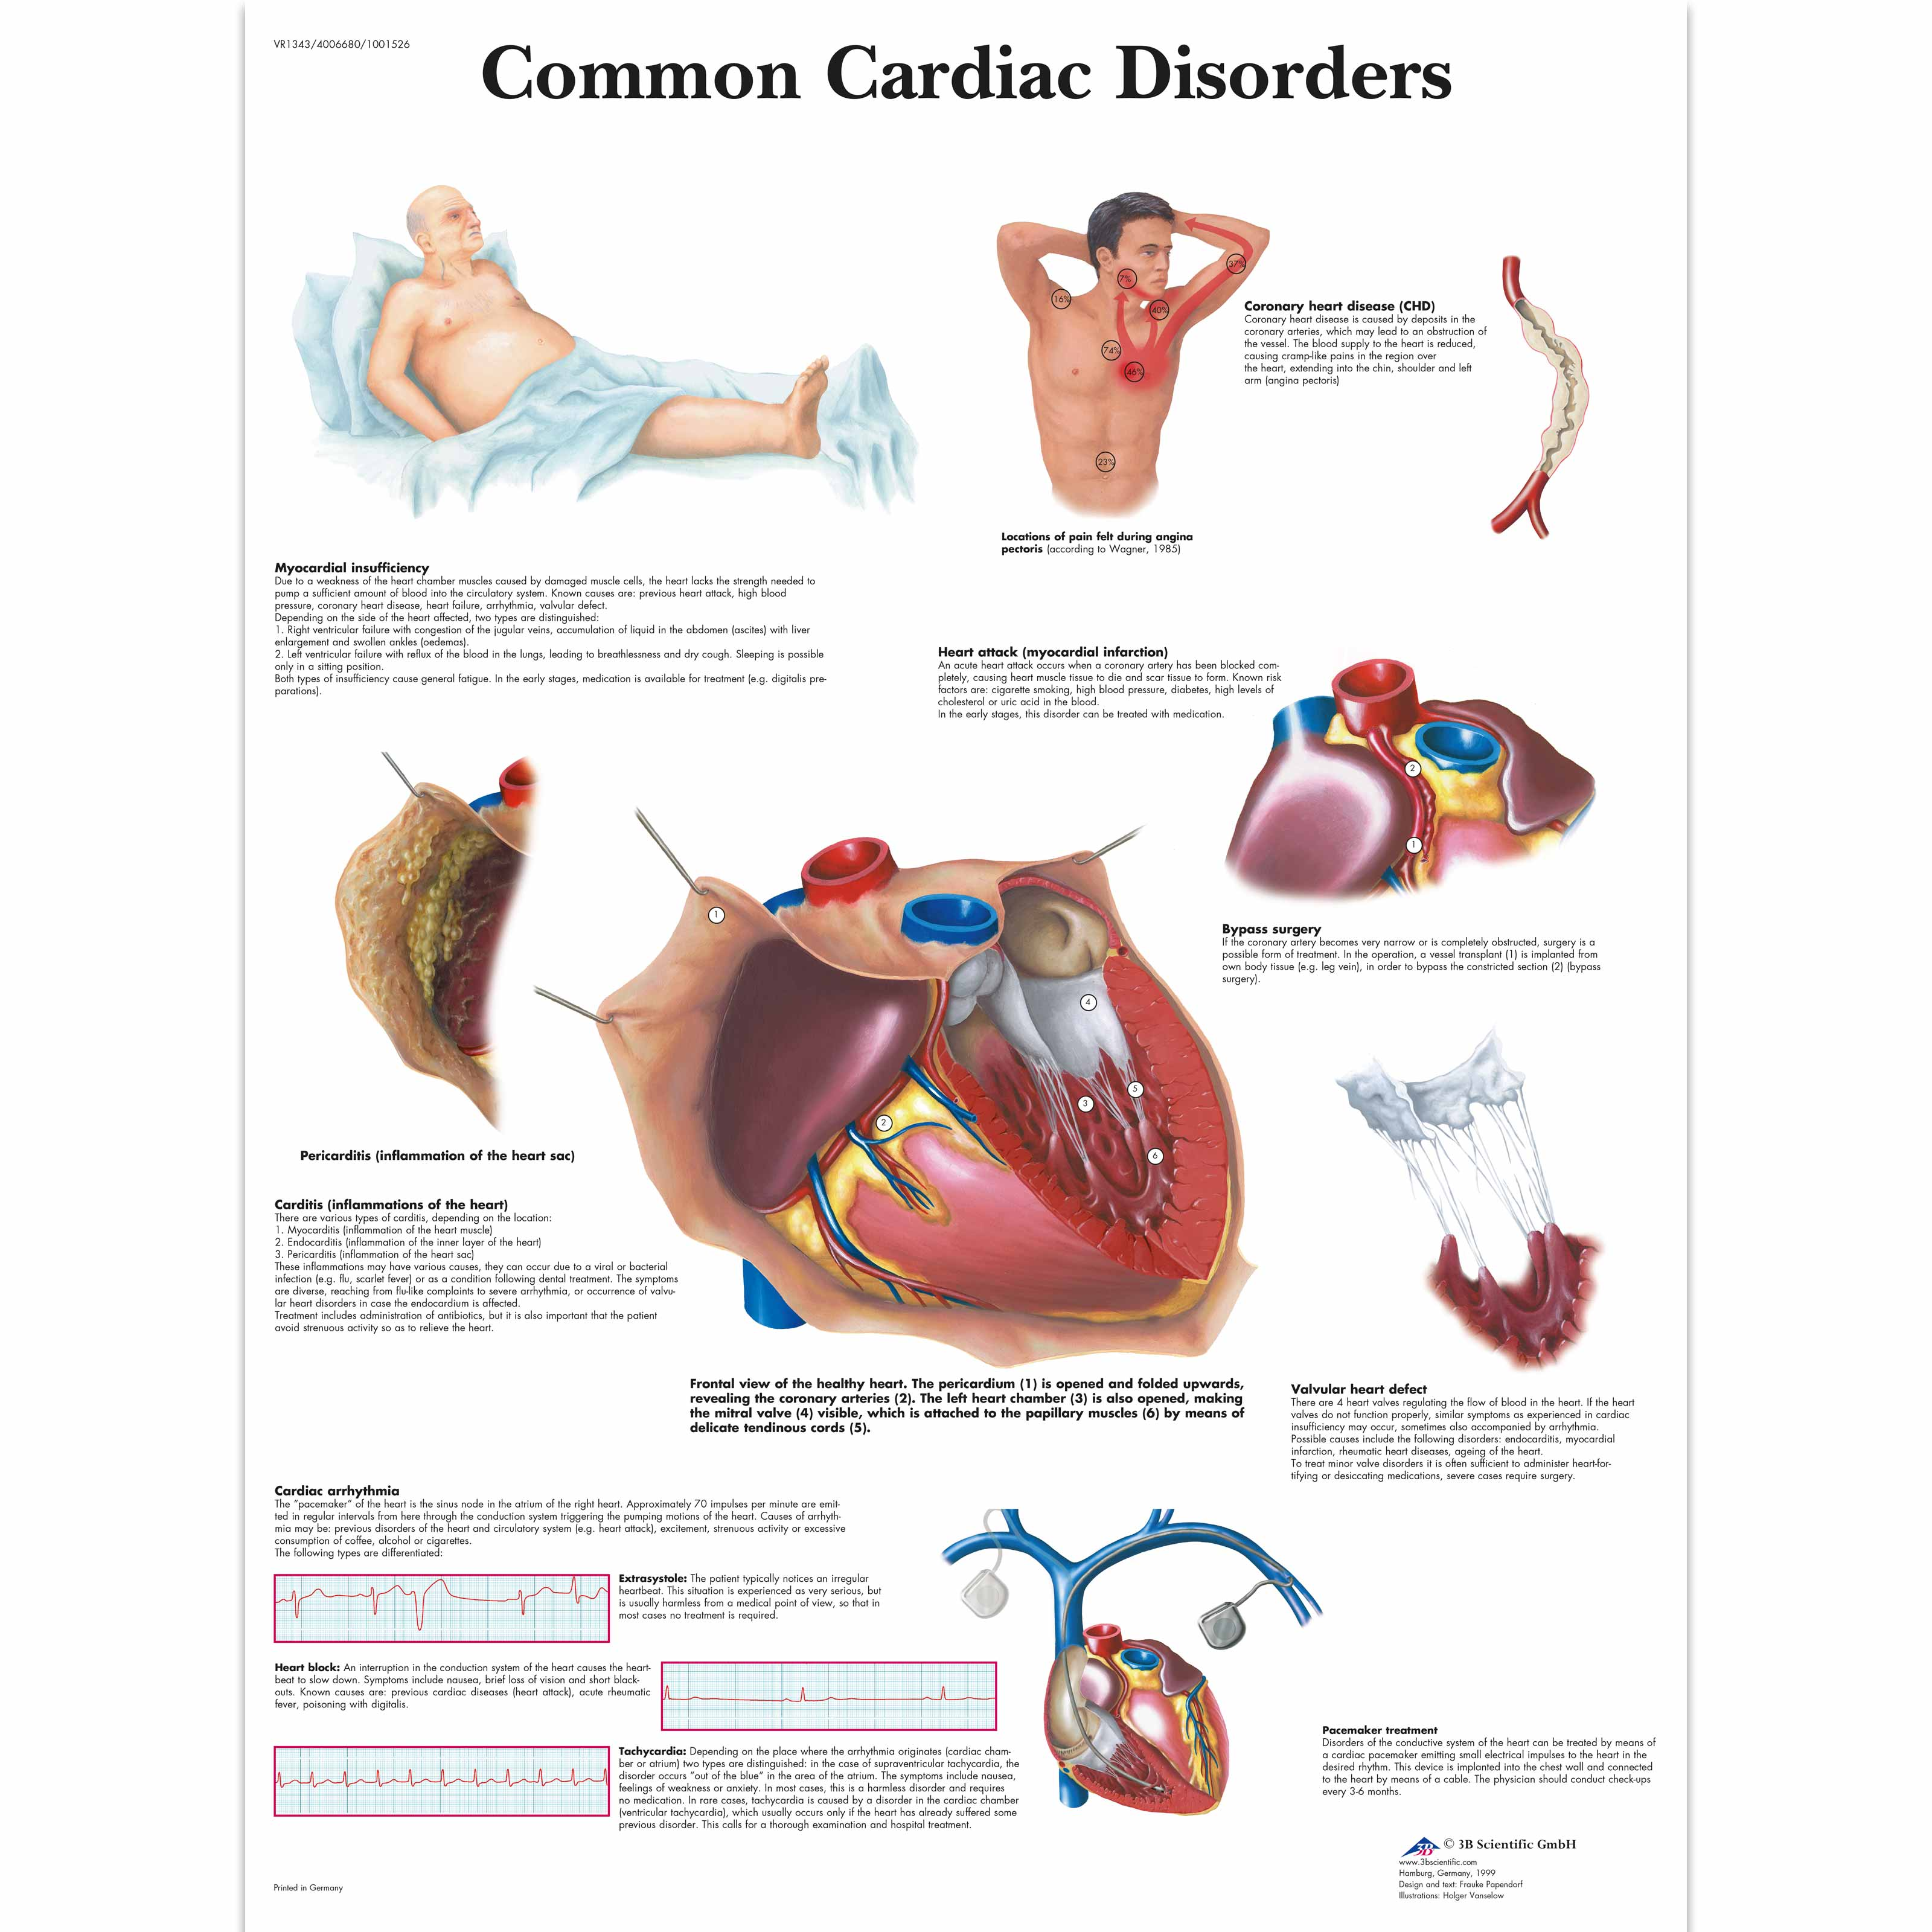 cardiovascular disorders Cardiovascular disease cardiovascular disease (cvd) is the leading cause of death and disease burden in australia the number of people living with cardiovascular disease is increasing due to factors including population ageing and improved treatments that have resulted in people living longer with cvd.